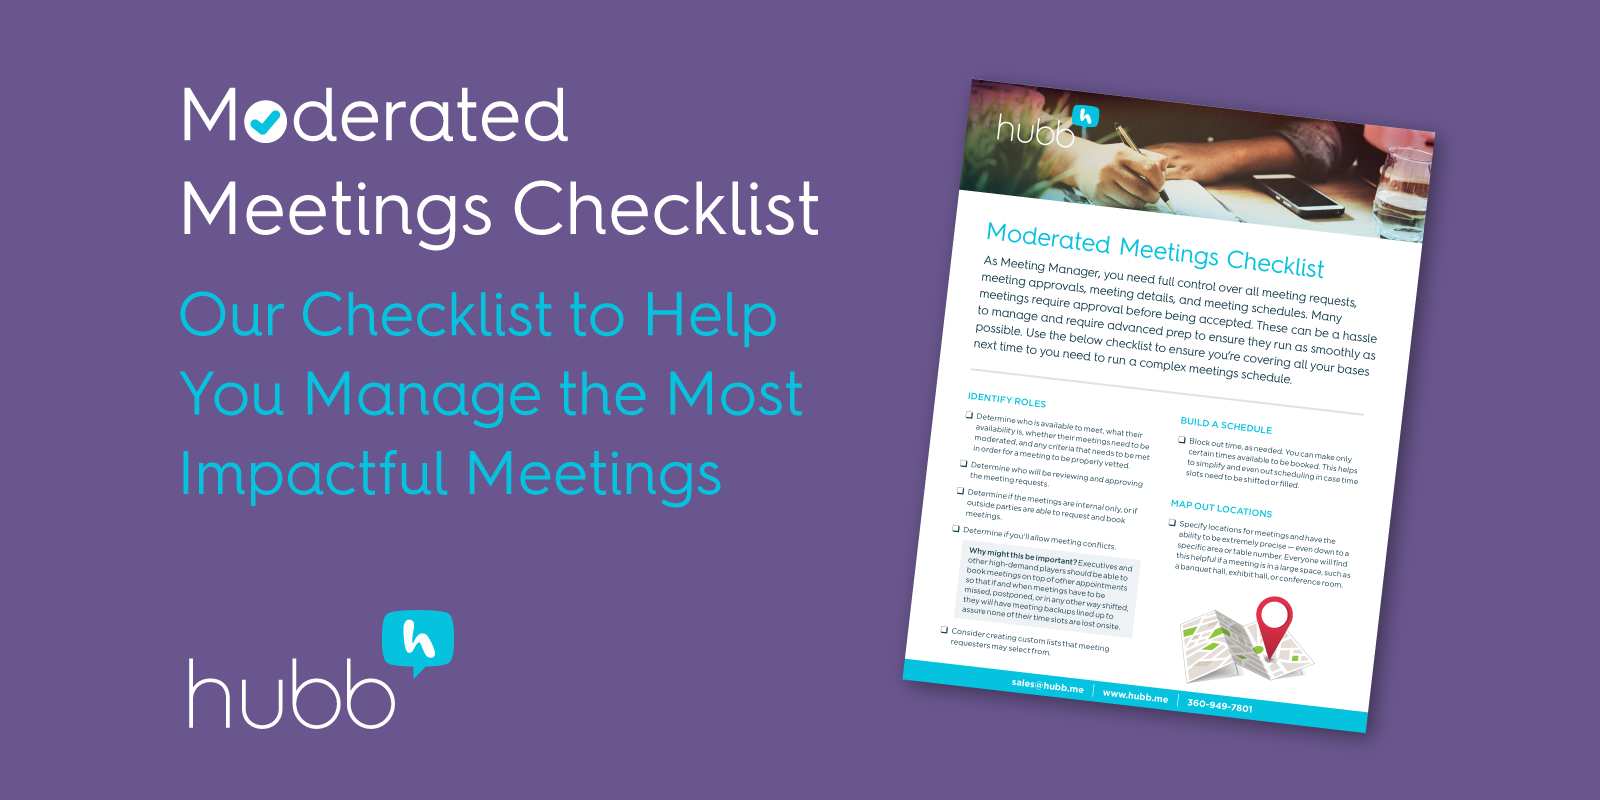 ModeratedMeetings-Checklist-Social-2